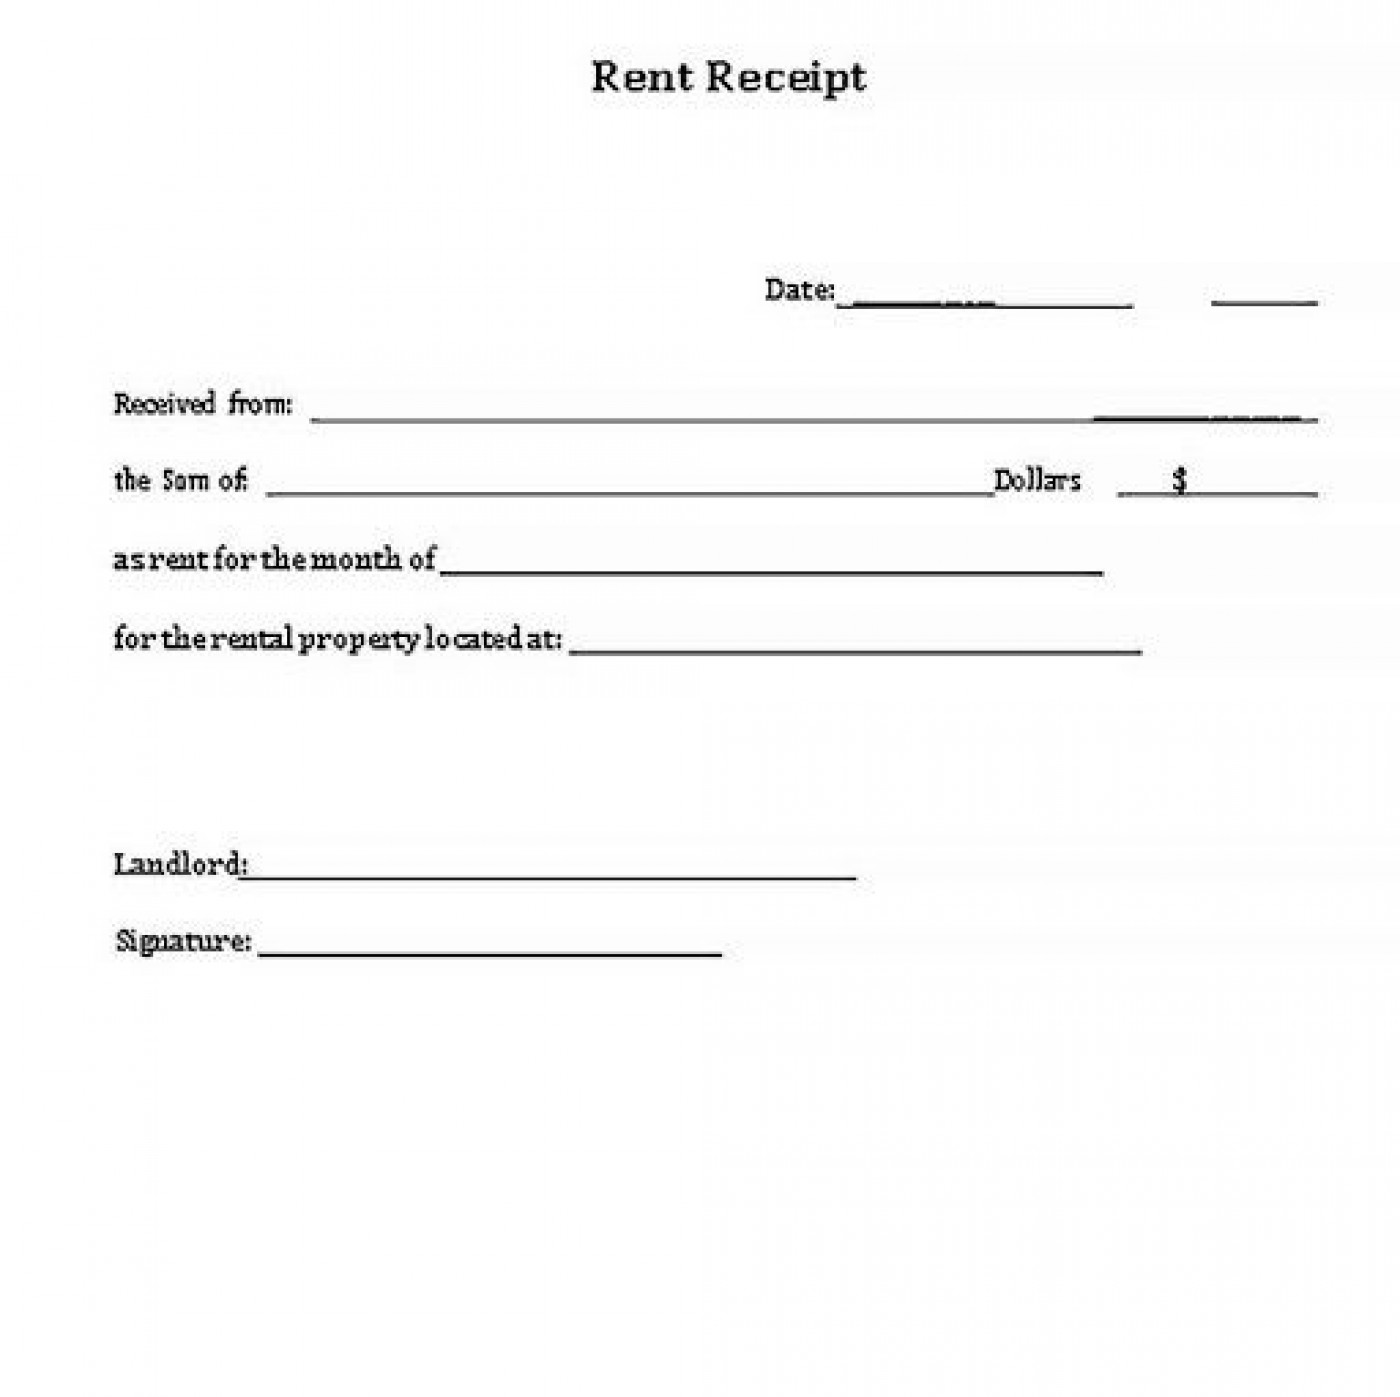 001 Stupendou Rent Receipt Sample Doc Highest Quality  Template India Format Free Download1400